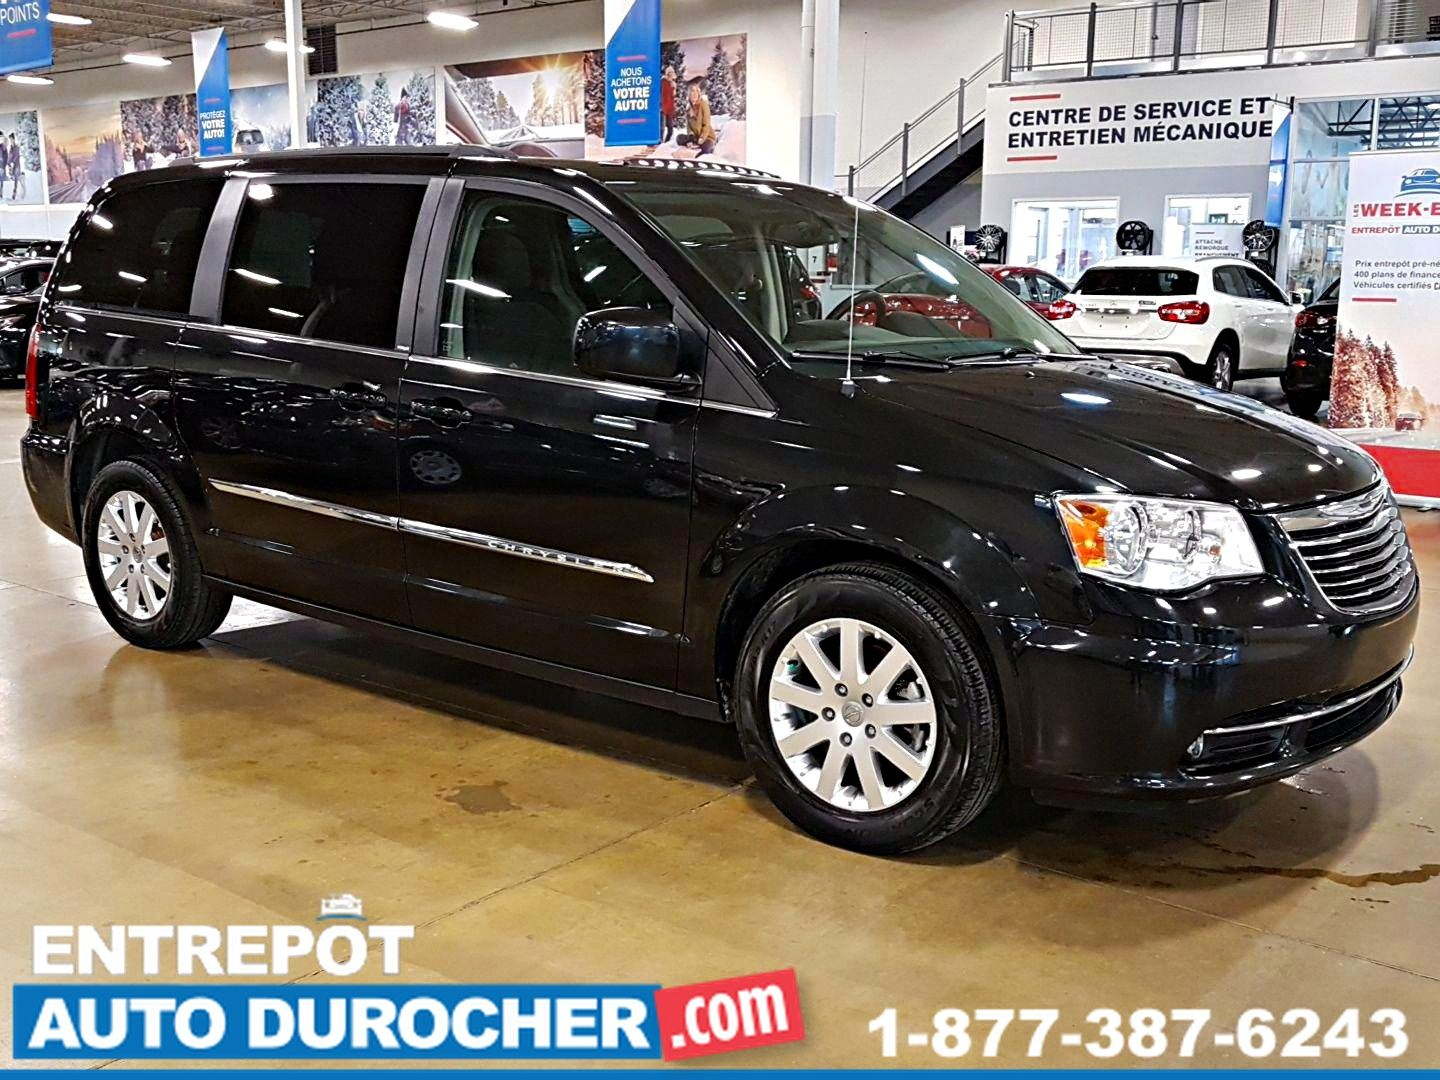 2013 Chrysler Town & Country TOURING NAVIGATION, STOW N' GO, TOIT OUVRANT BLU-RAY